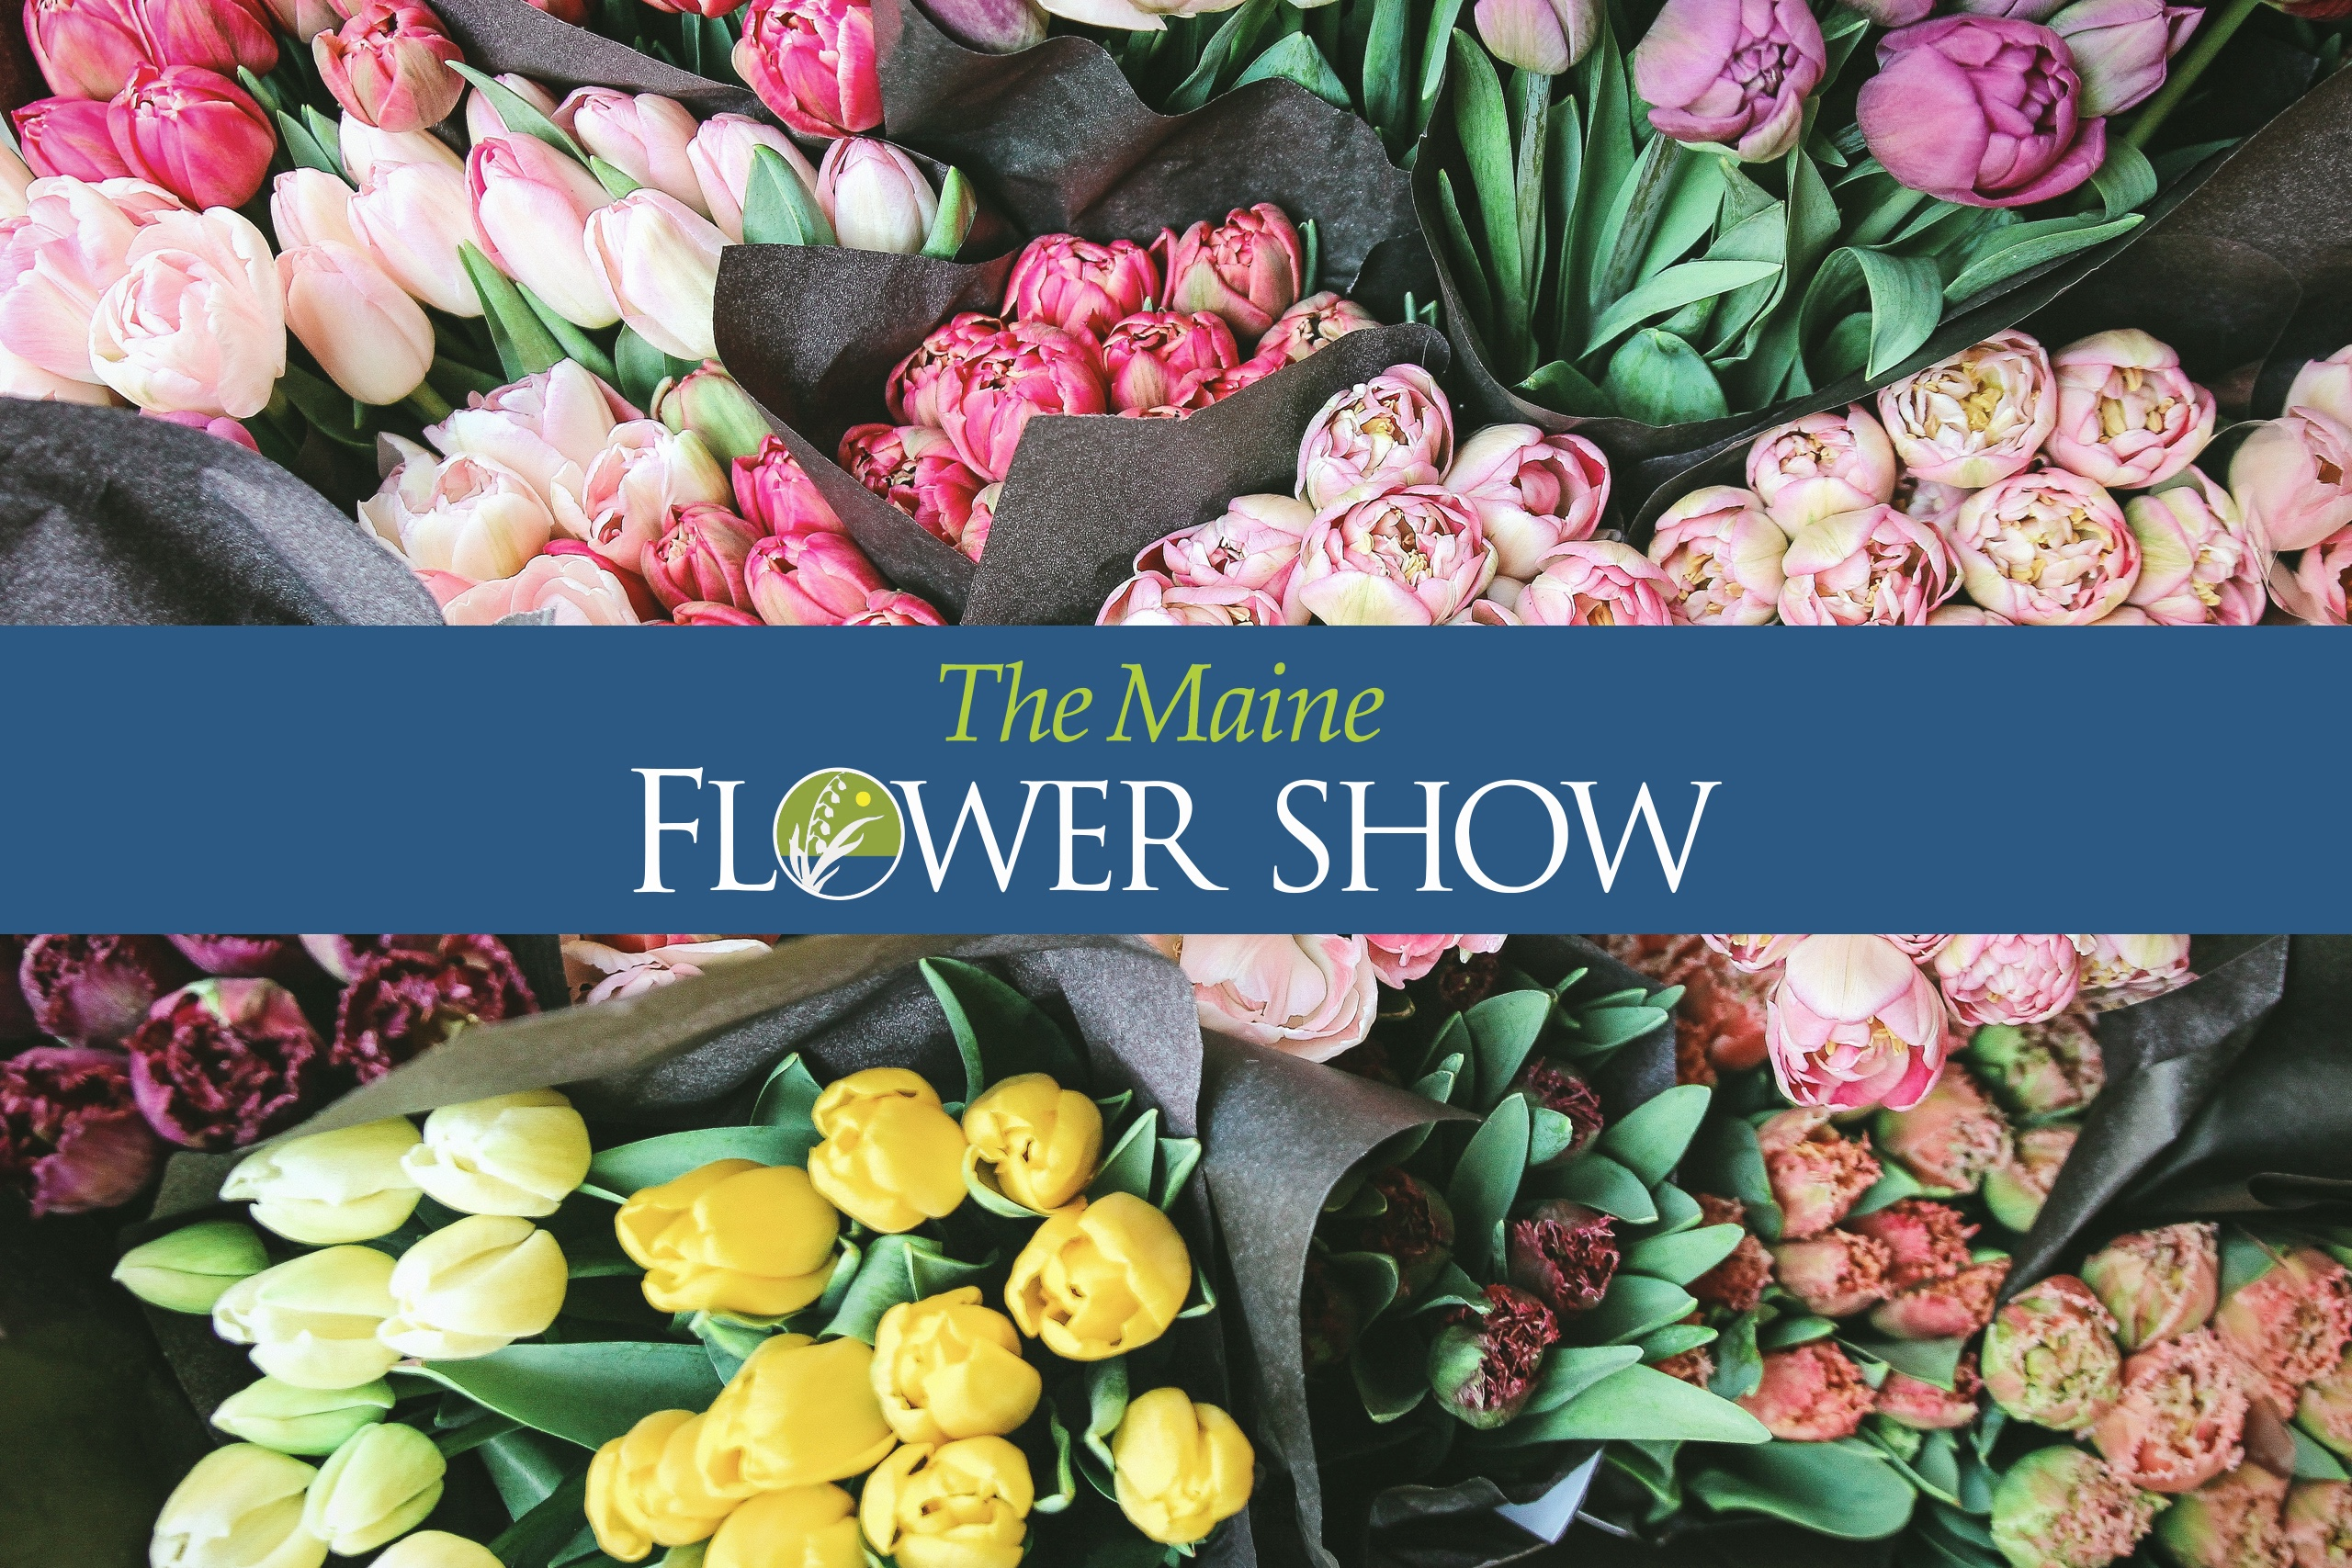 Flowers with Flower Show text overlay